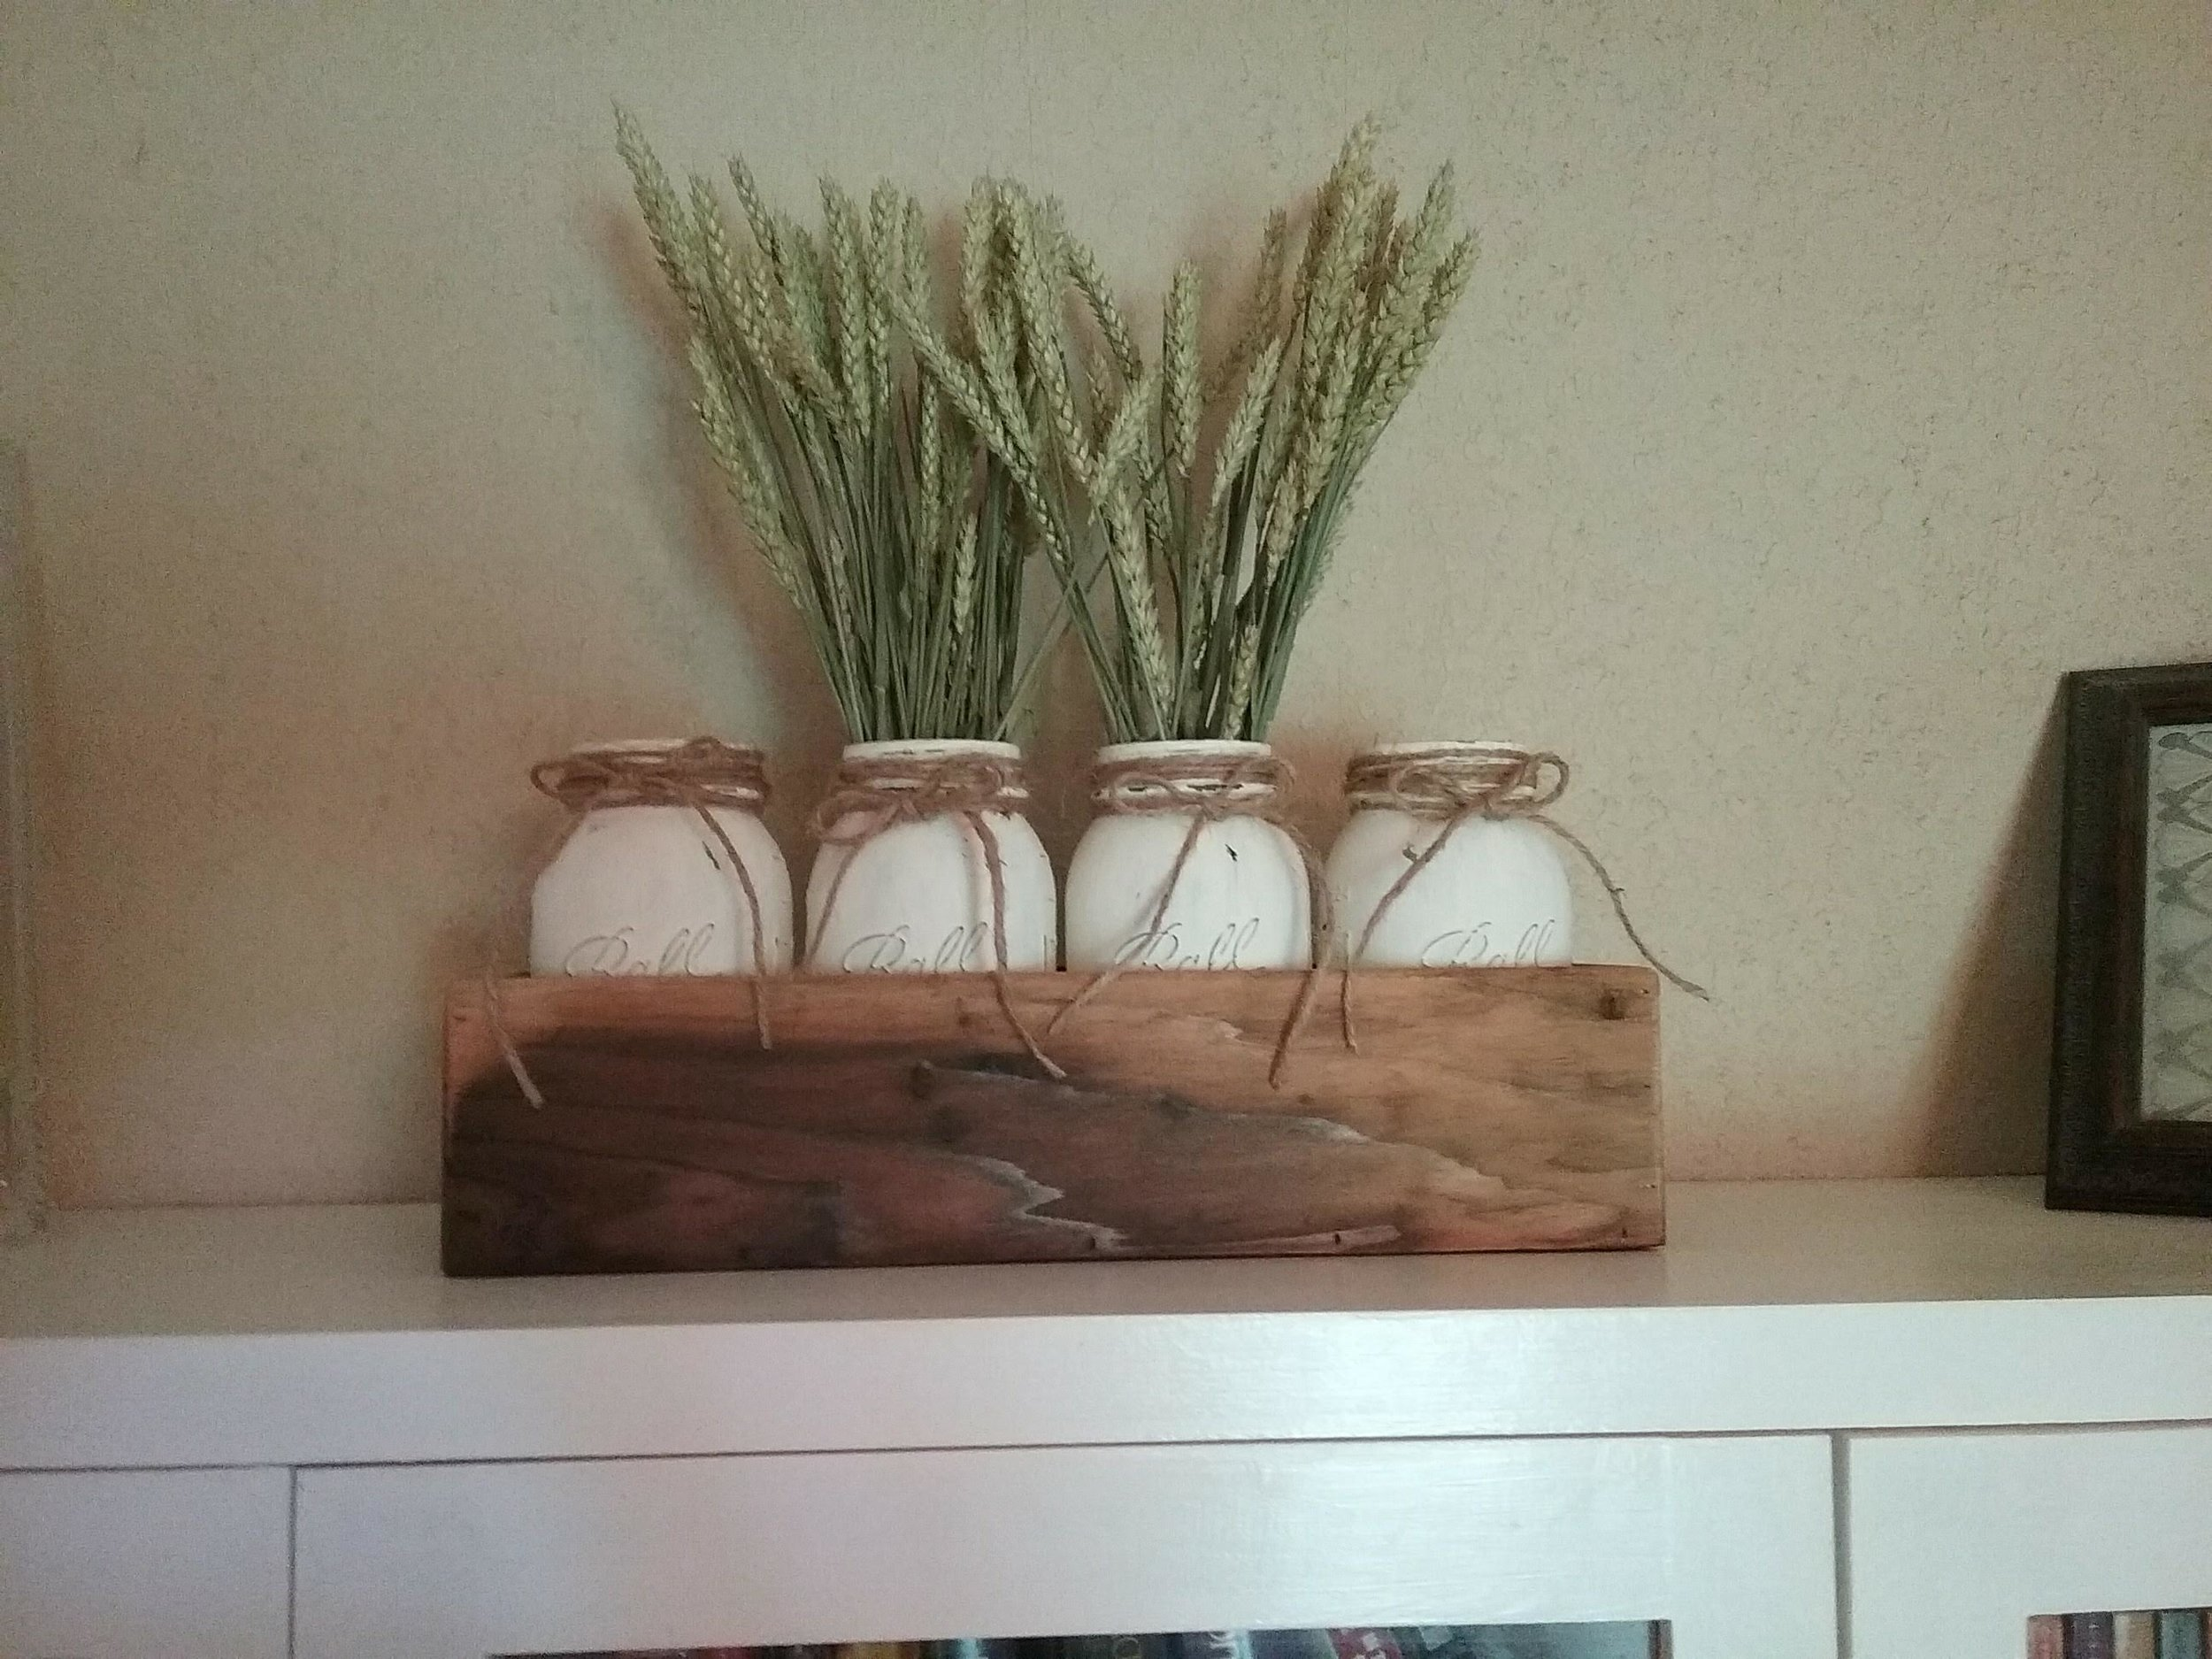 Distressed Mason Jars in rustic box - We sell our large boxes for $30 and smaller boxes for $26. Distressed mason jars are $6.50 for pint and $8.50 for quart.